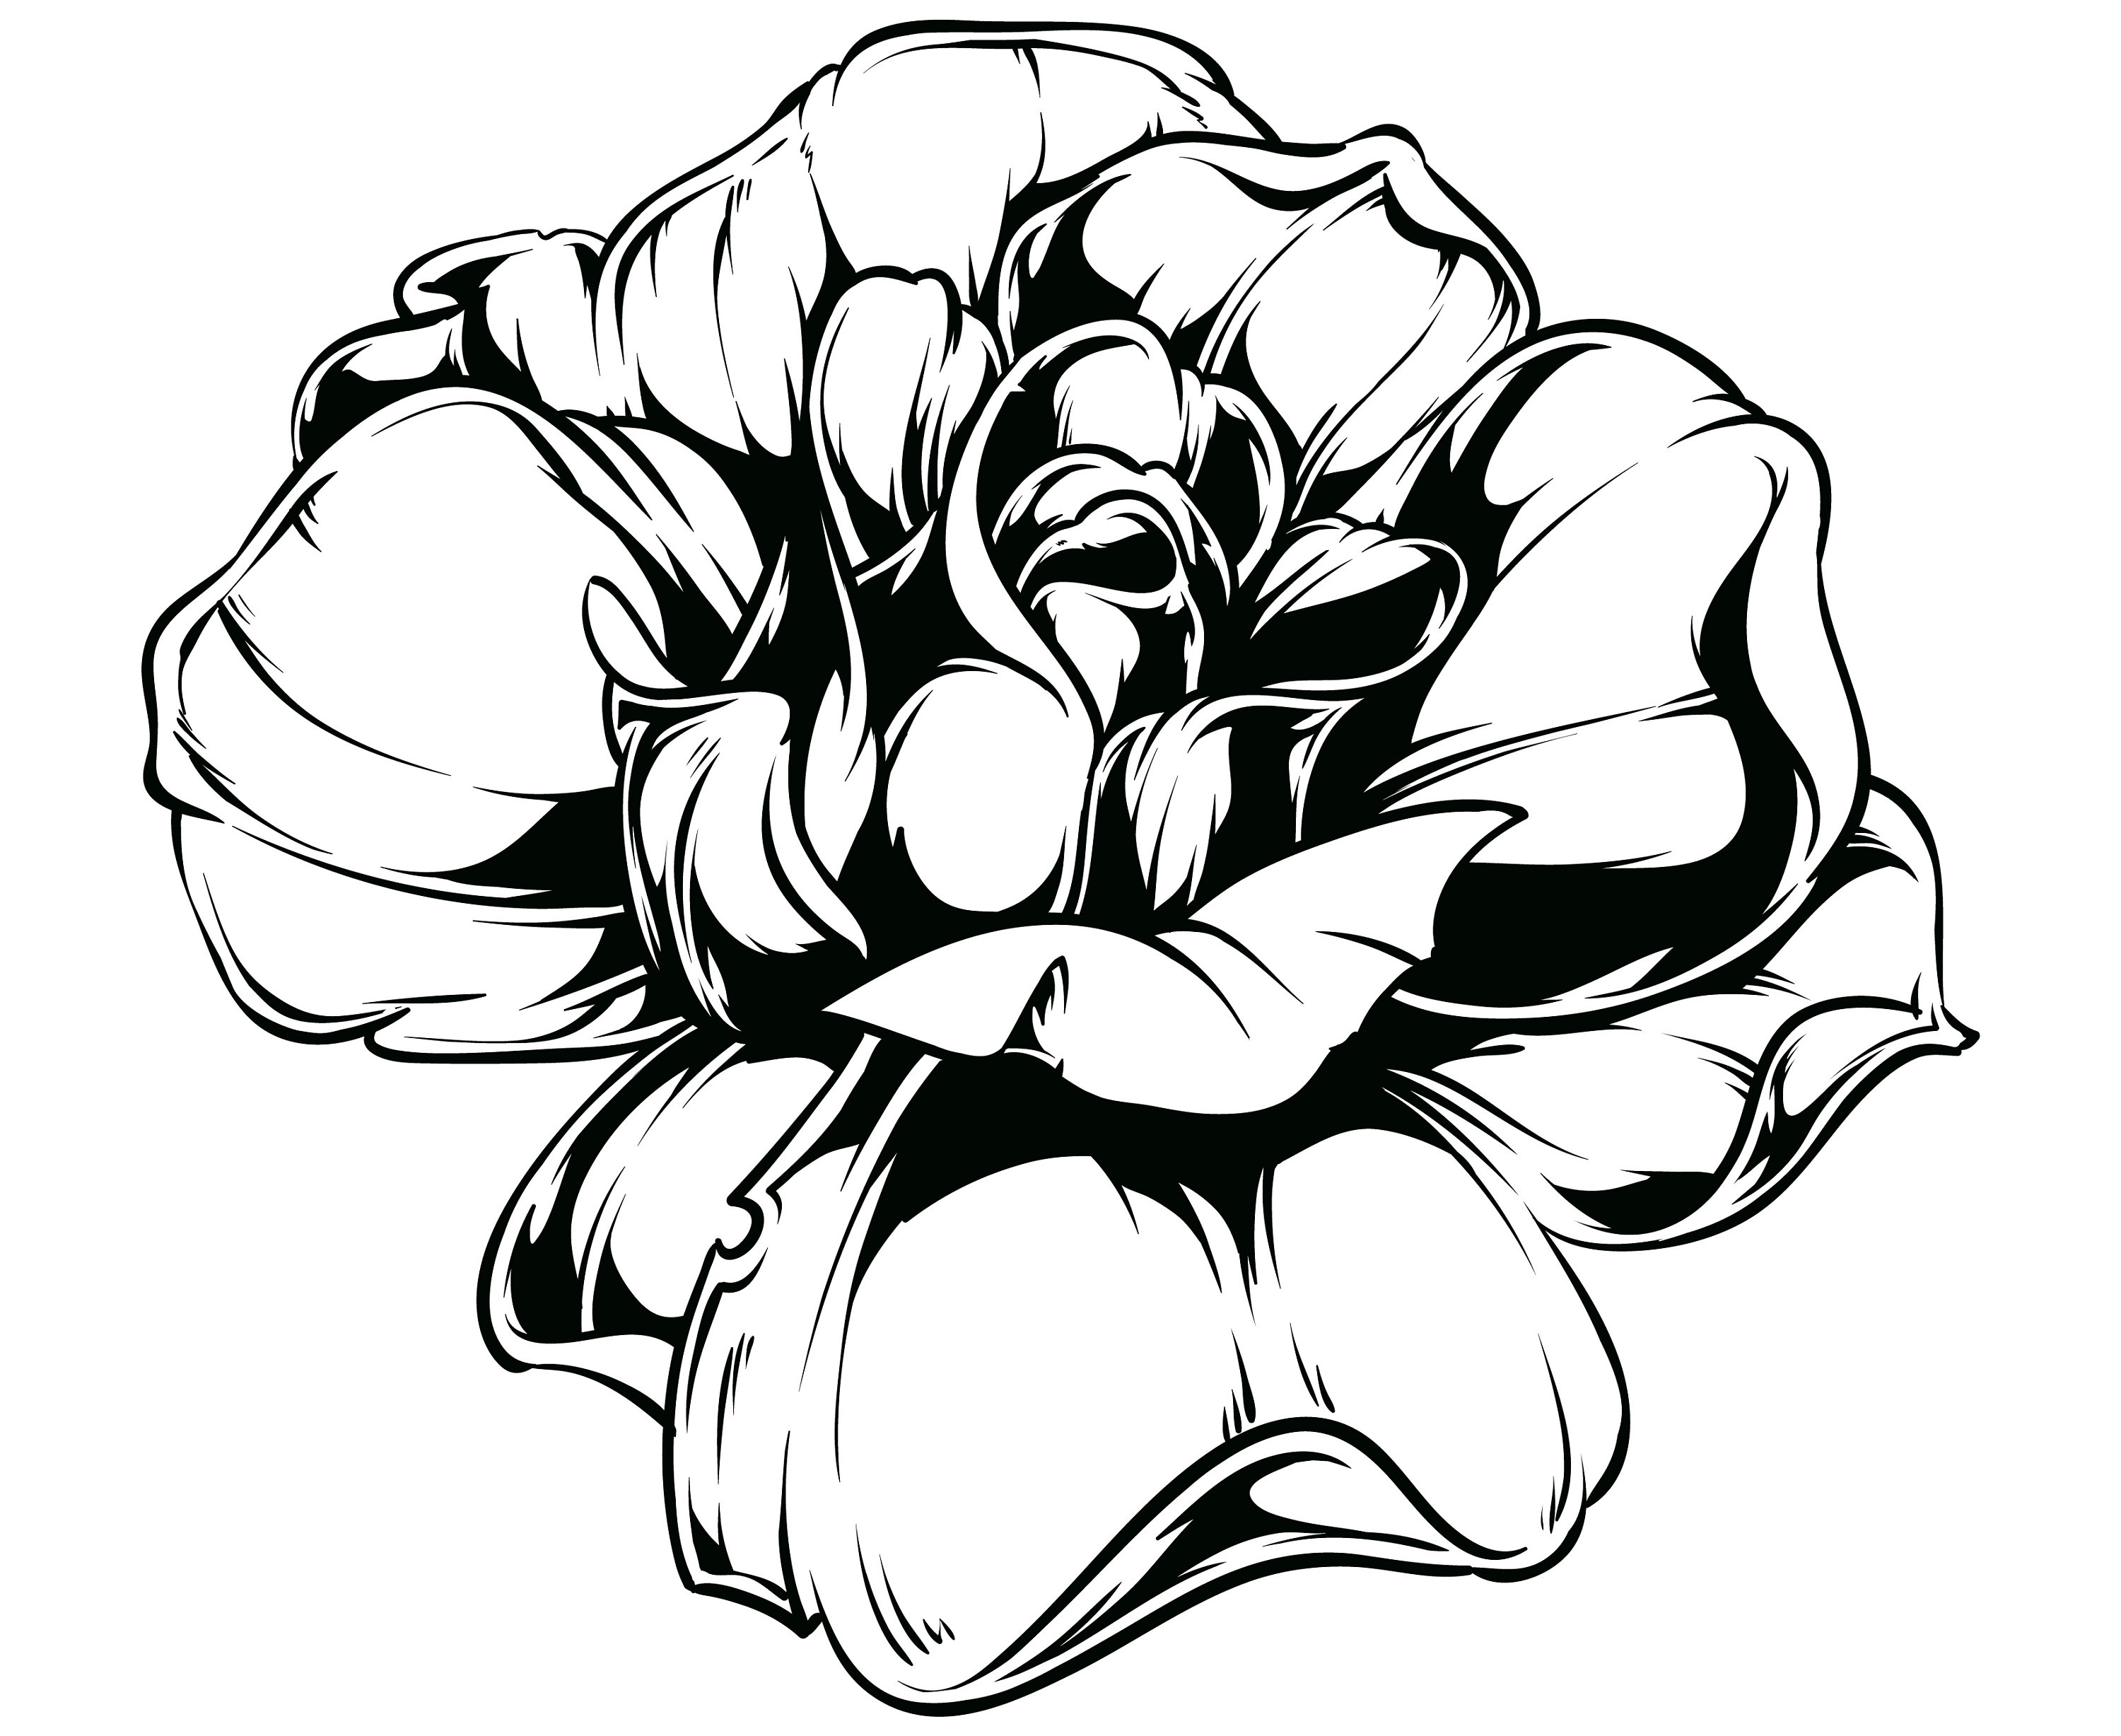 3000x2455 Rose Svg, Rose Blossom Svg, Rose Outline Svg, Rose Silhouette